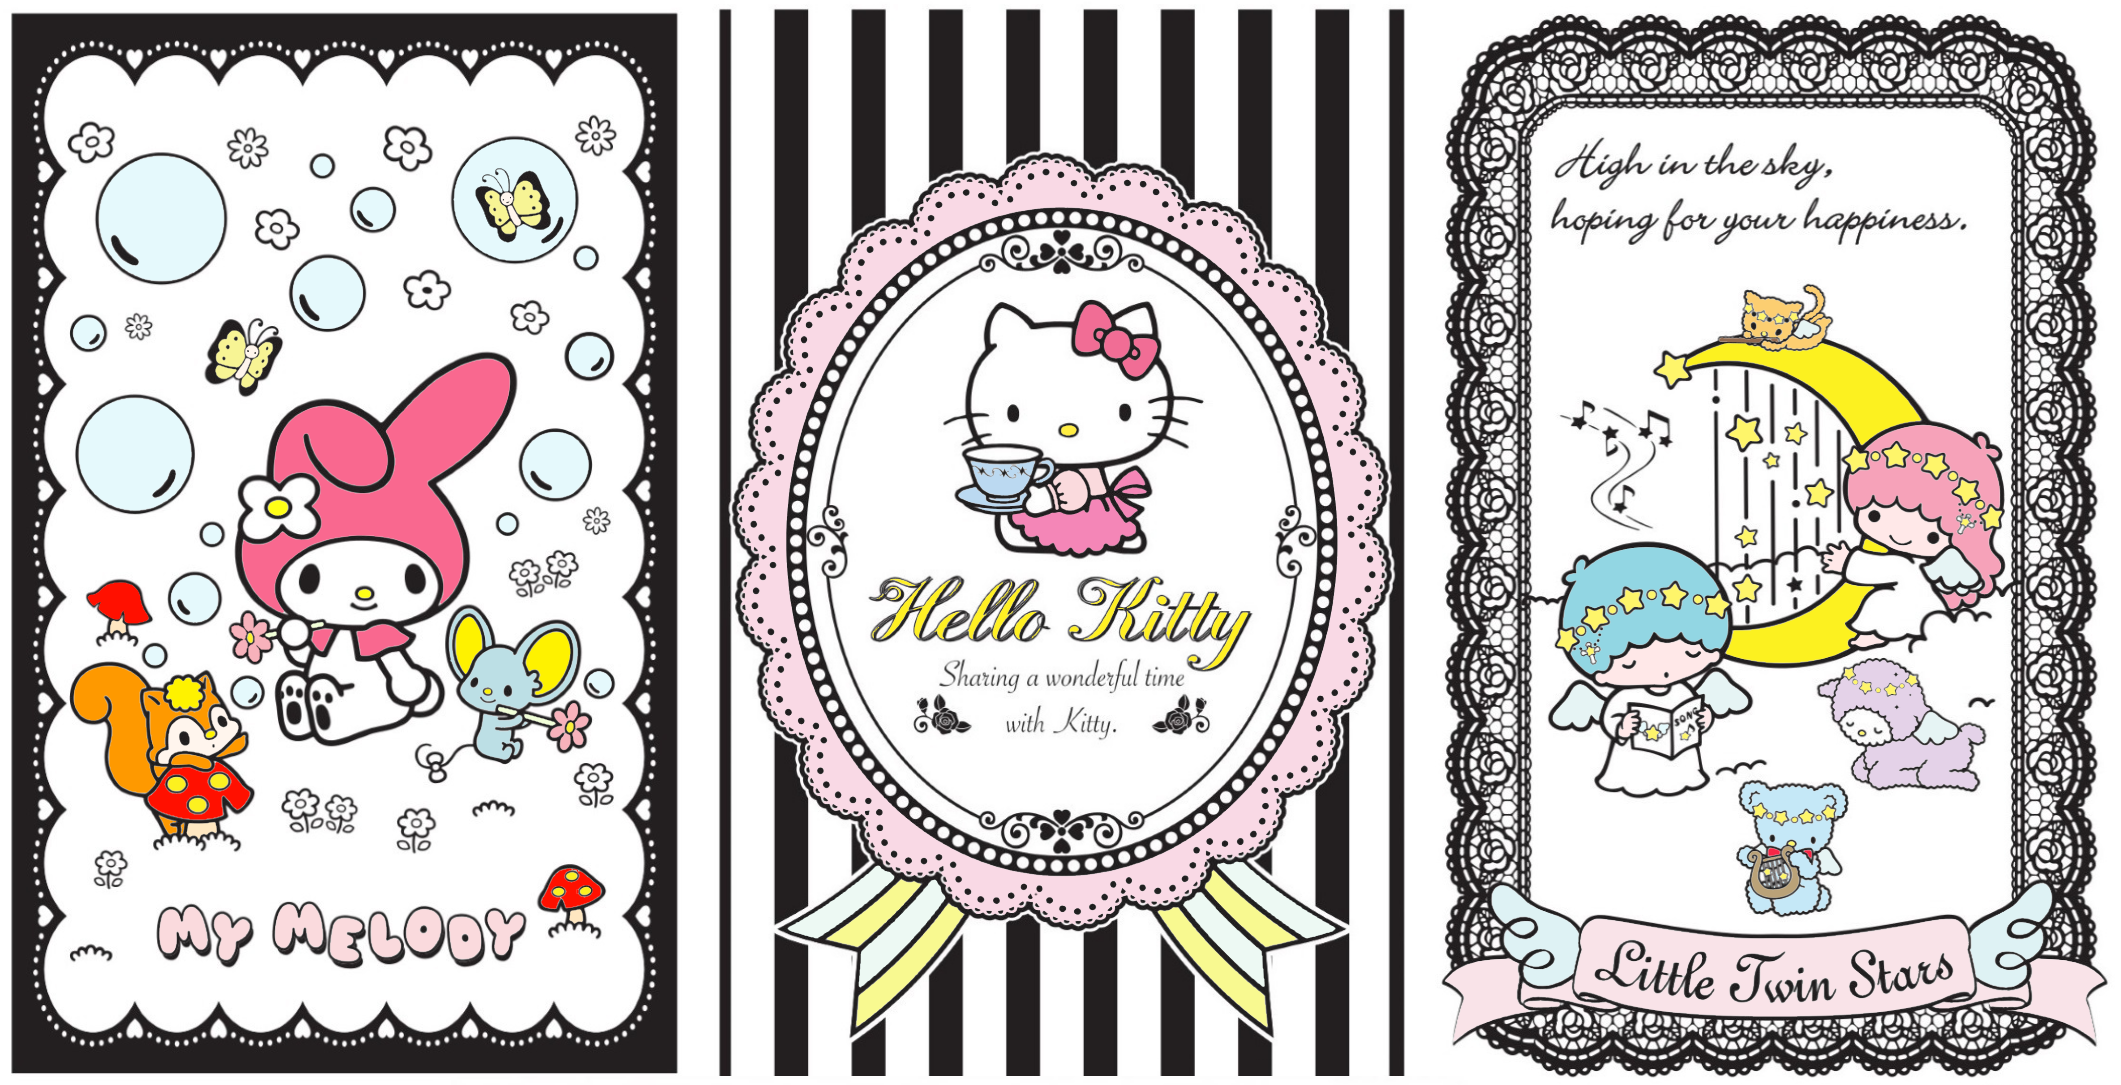 Would You Like To Add Decoration Stamp Of Hello Kitty And Friends In Your Card Making